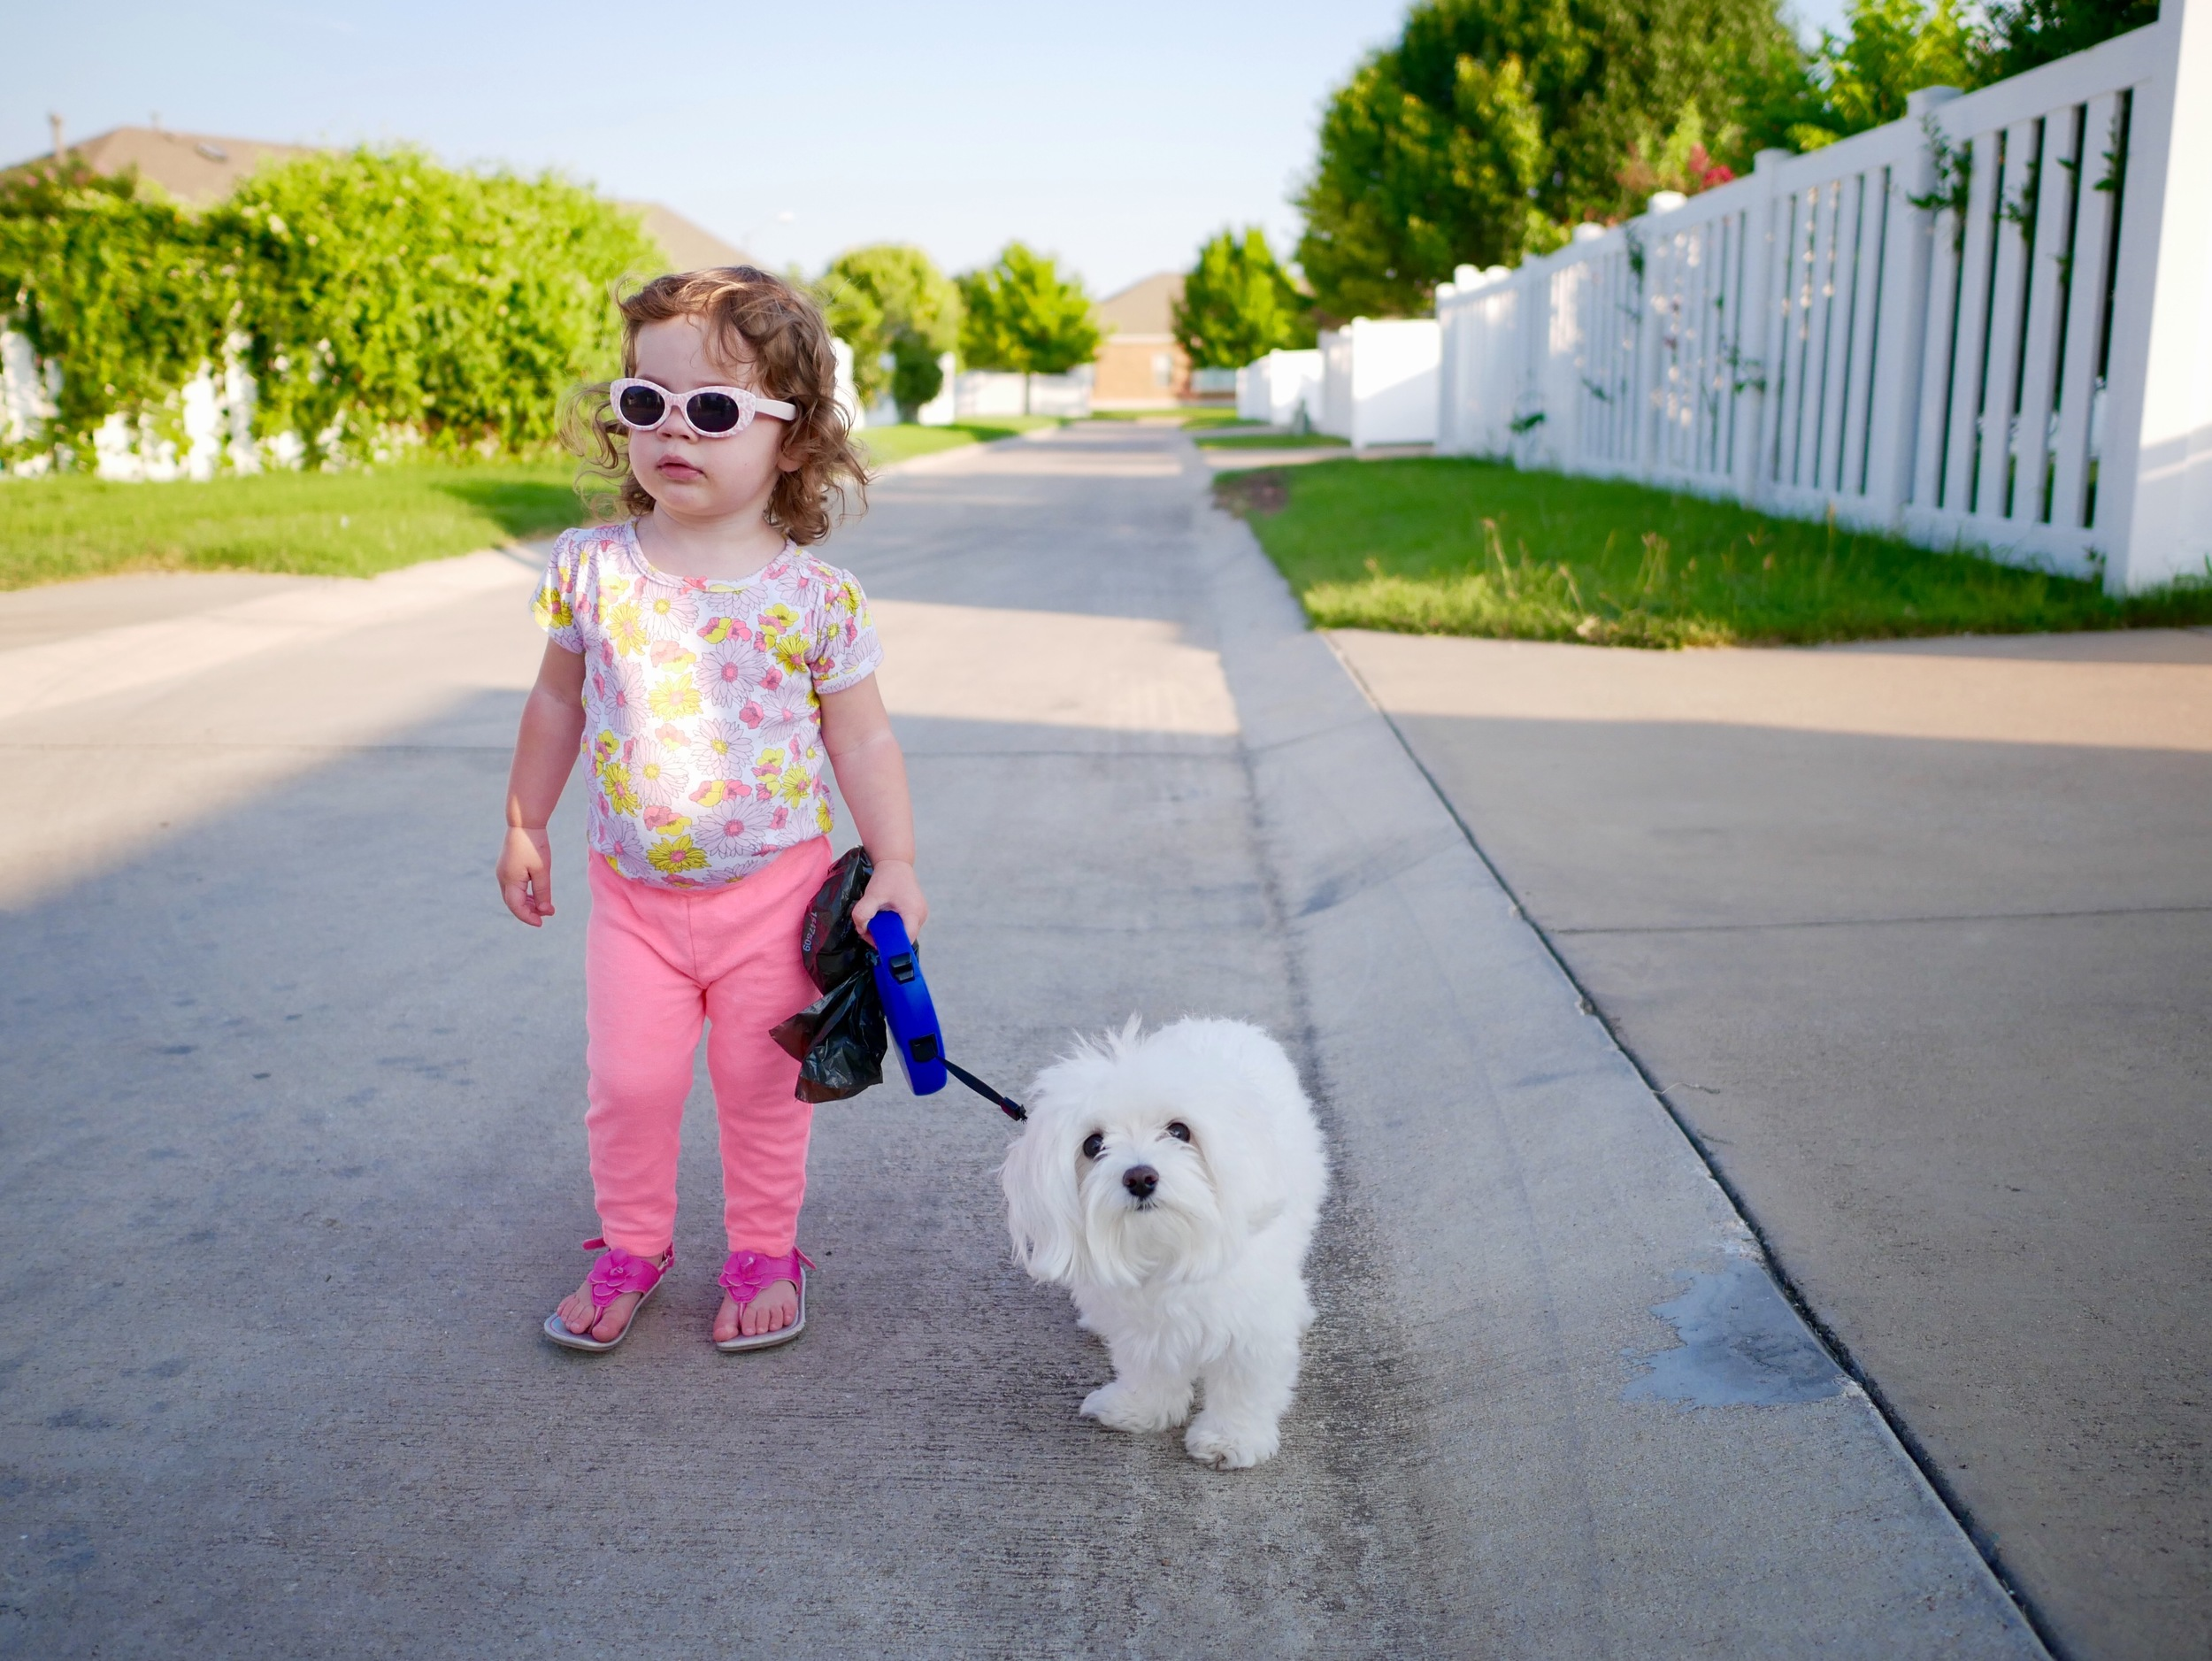 Annabelle walks her puppy Jack on the way to the park.